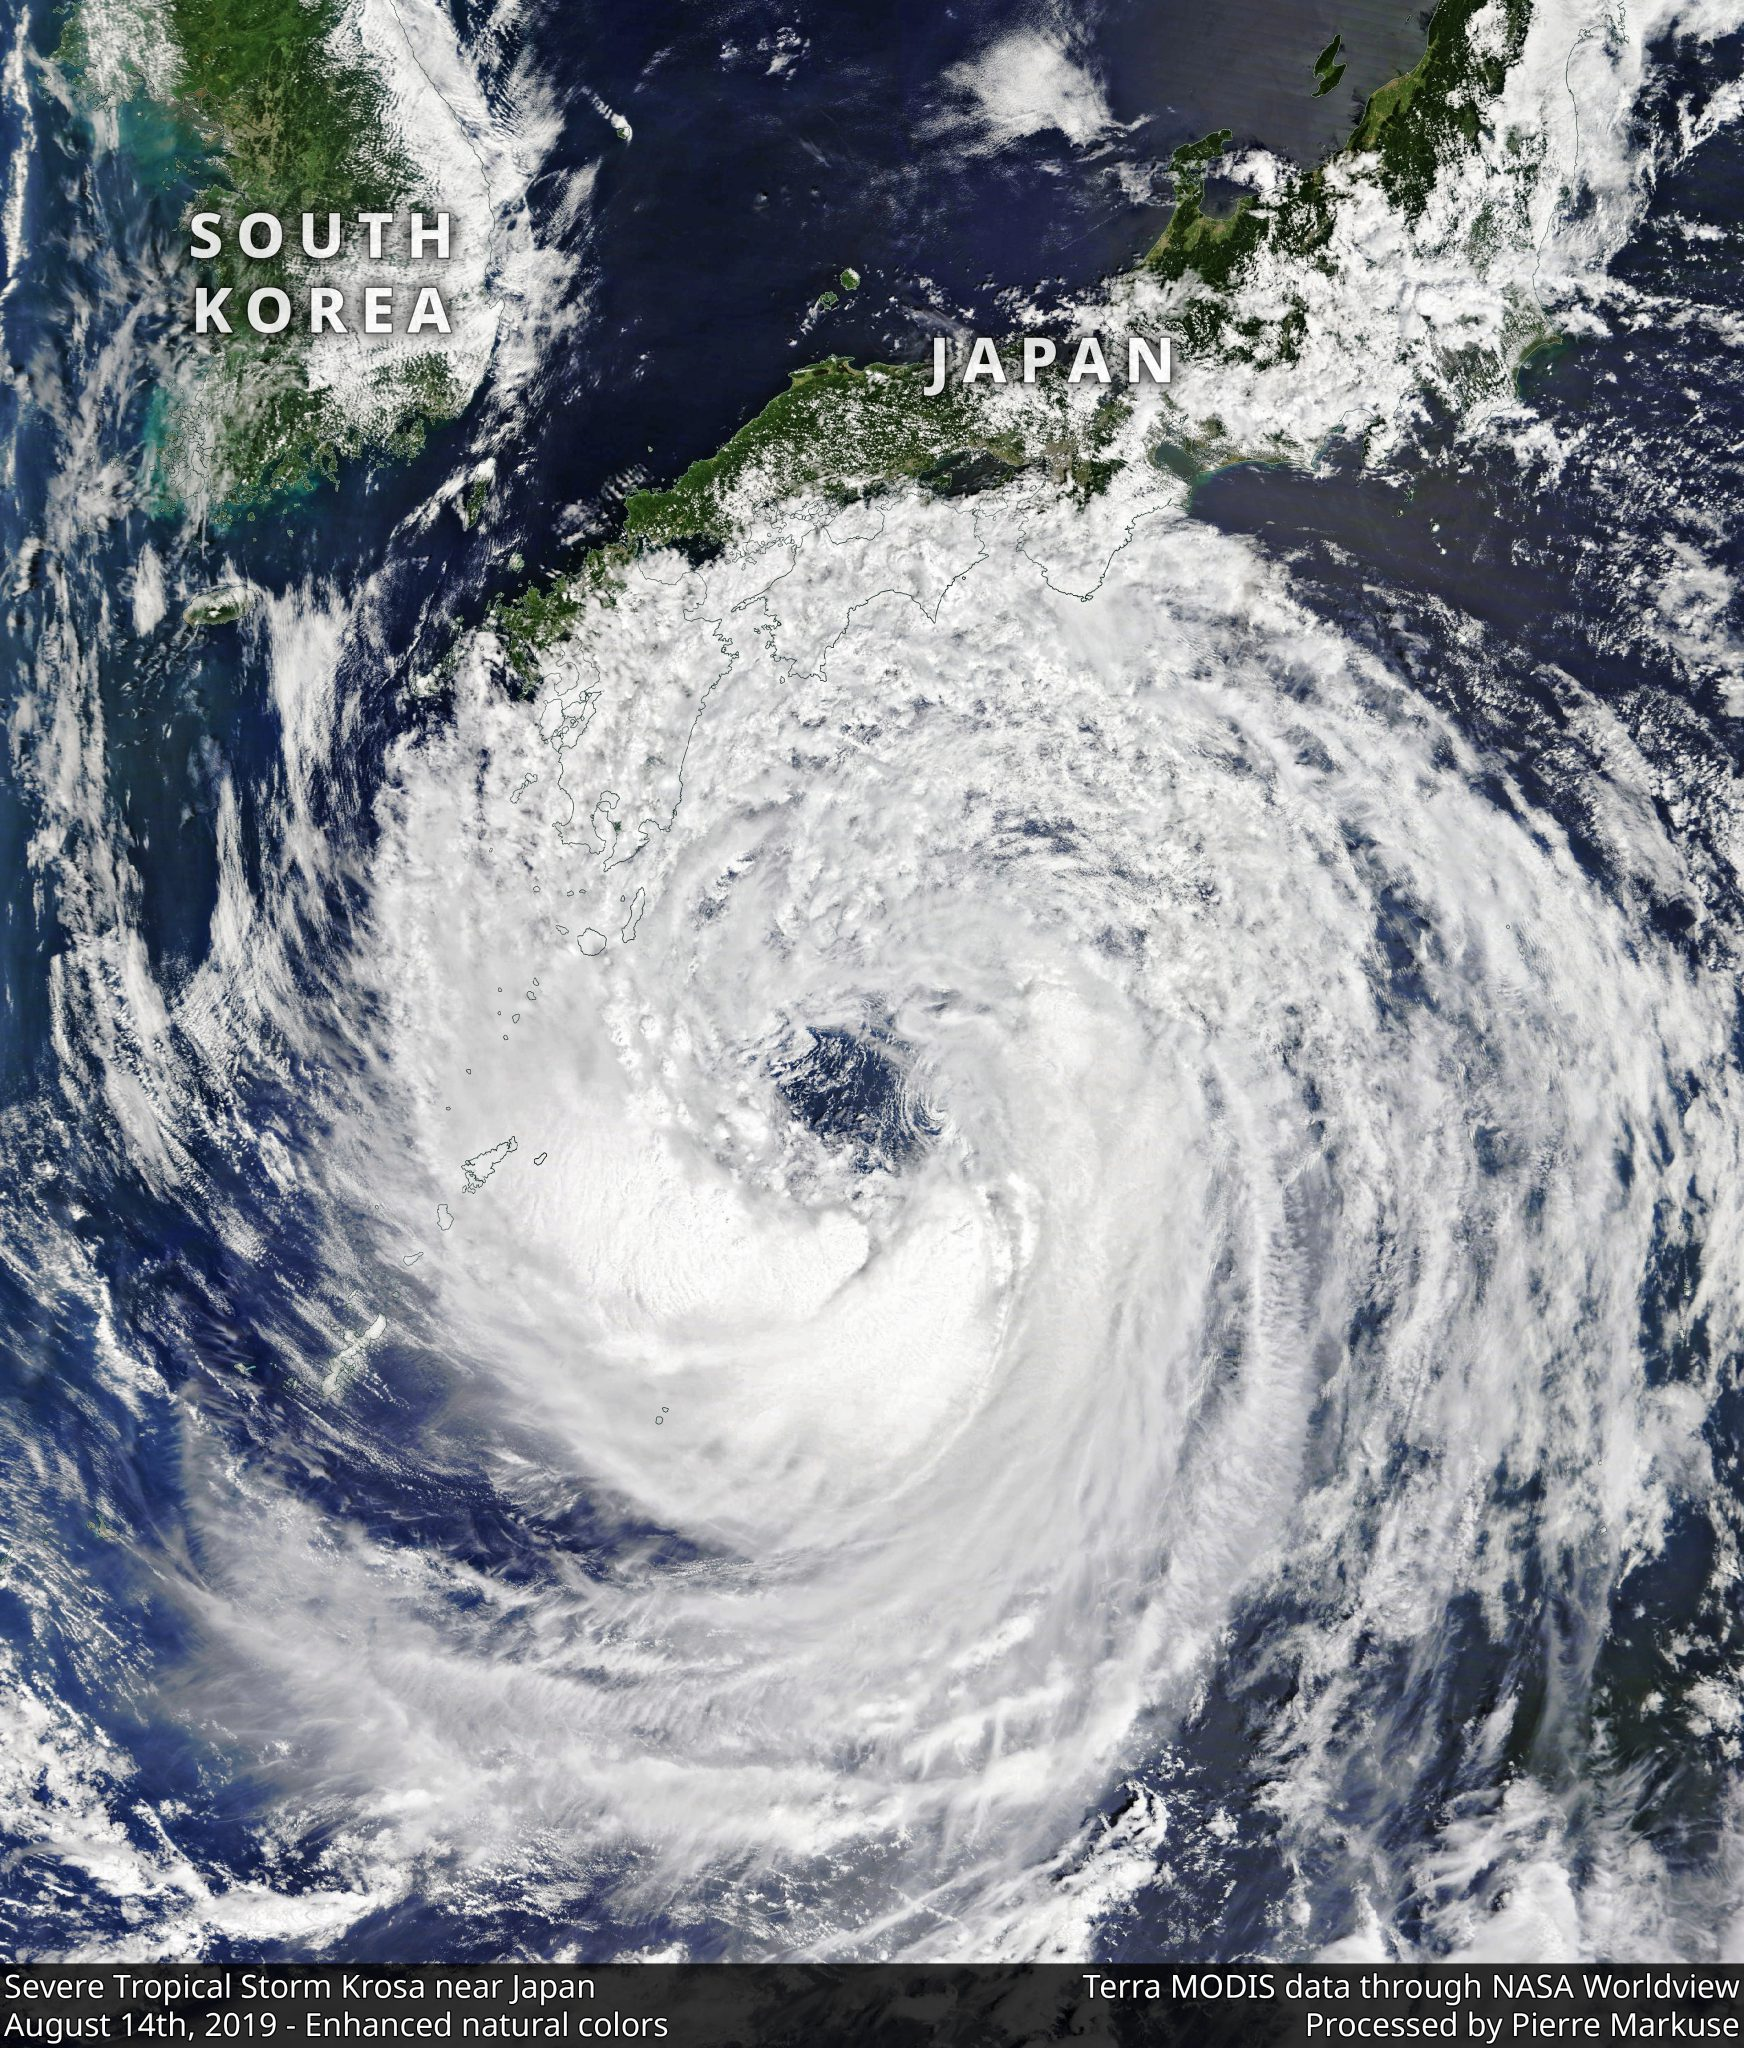 desc:Severe Tropical Storm Krosa near Japan - August 14th, 2019